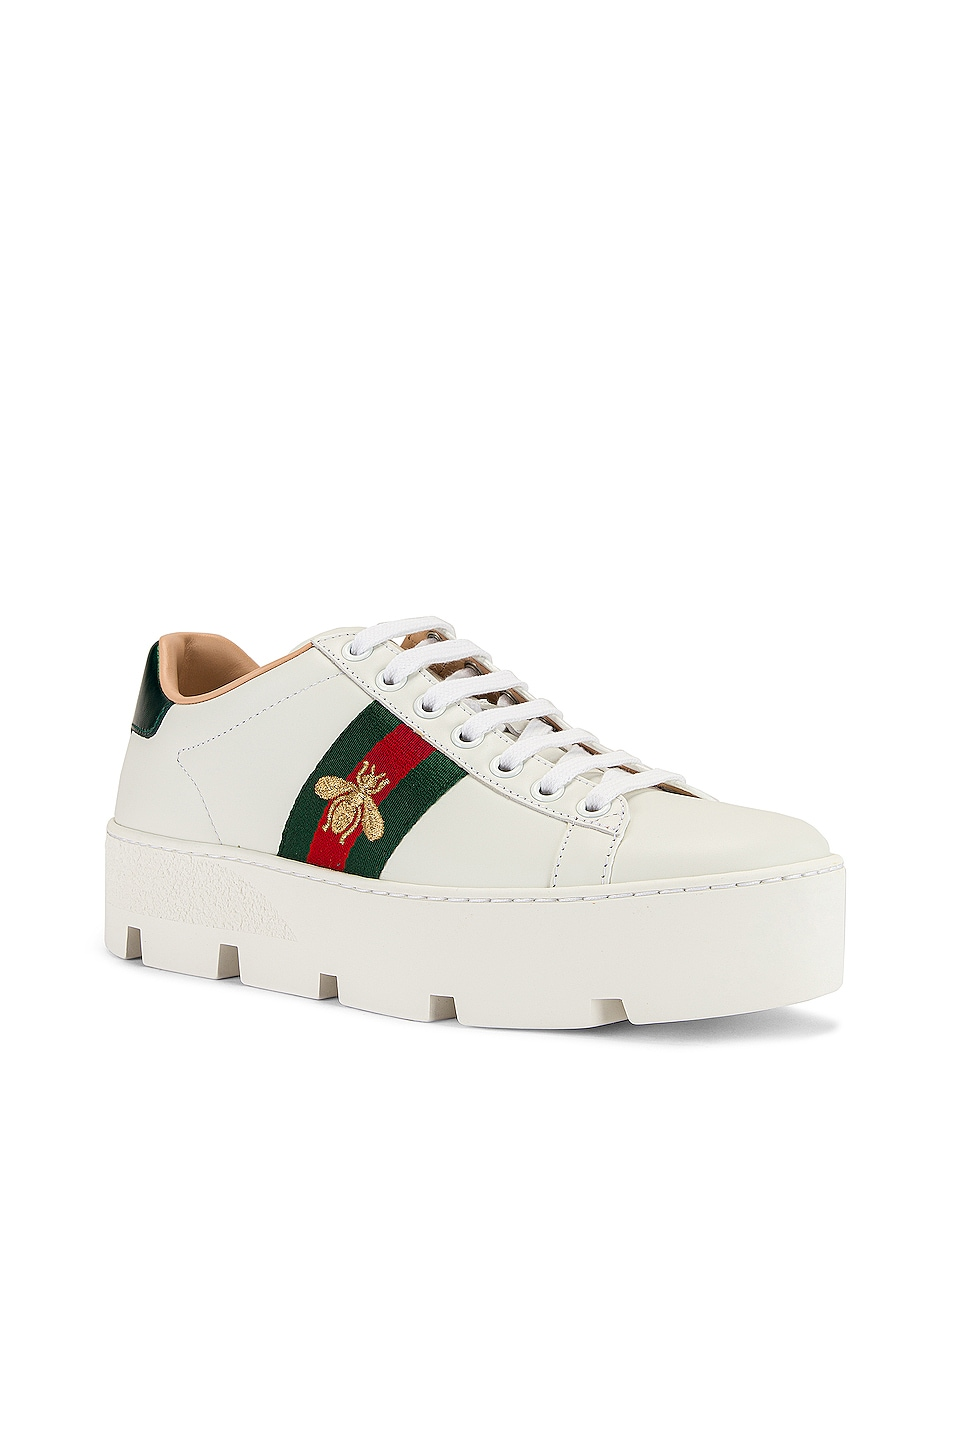 Image 3 of Gucci New Ace Platform Sneakers in White & Green & Red